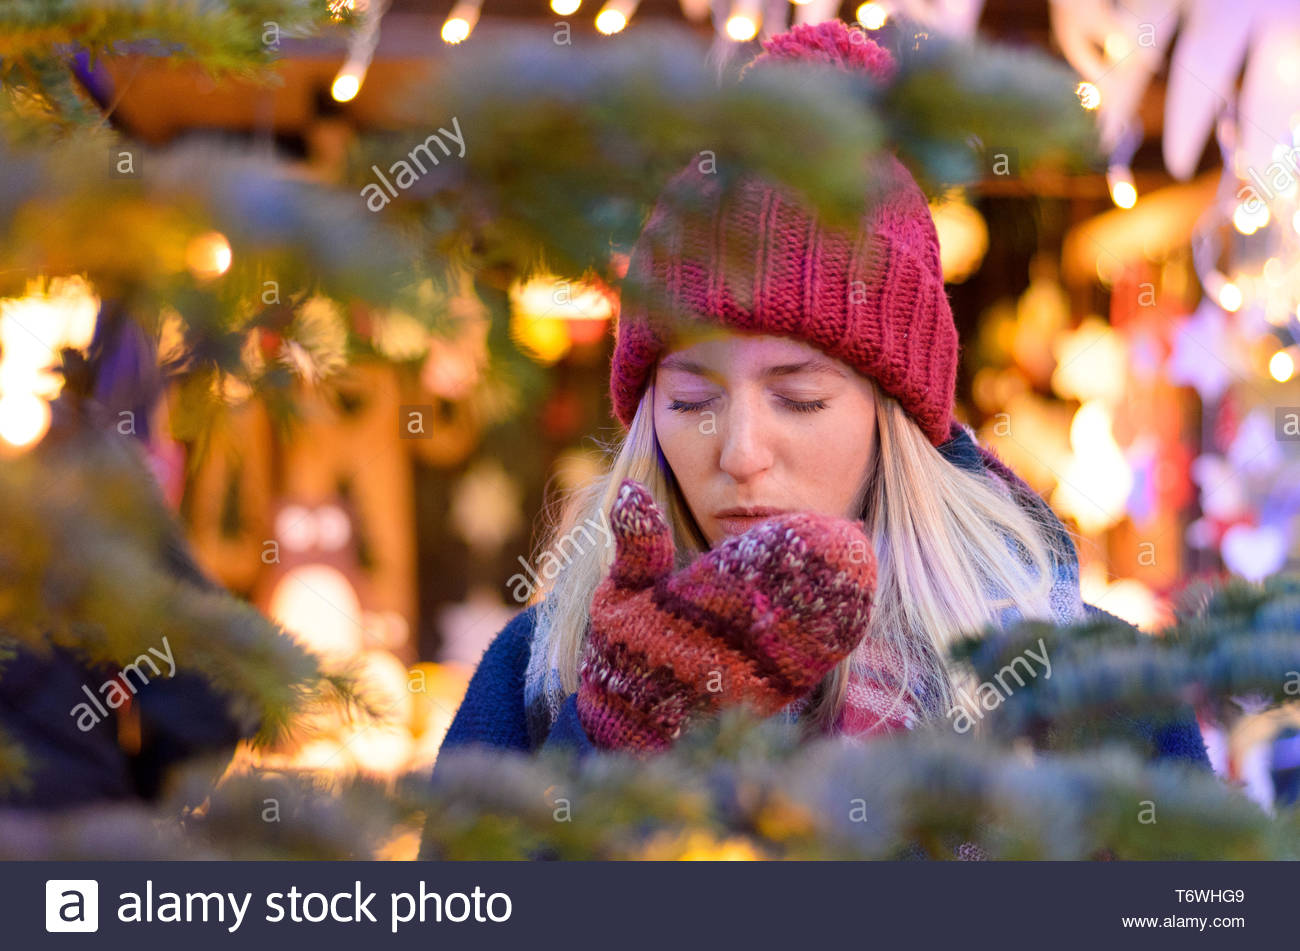 Cold young woman coughing on her gloved hands - Stock Image